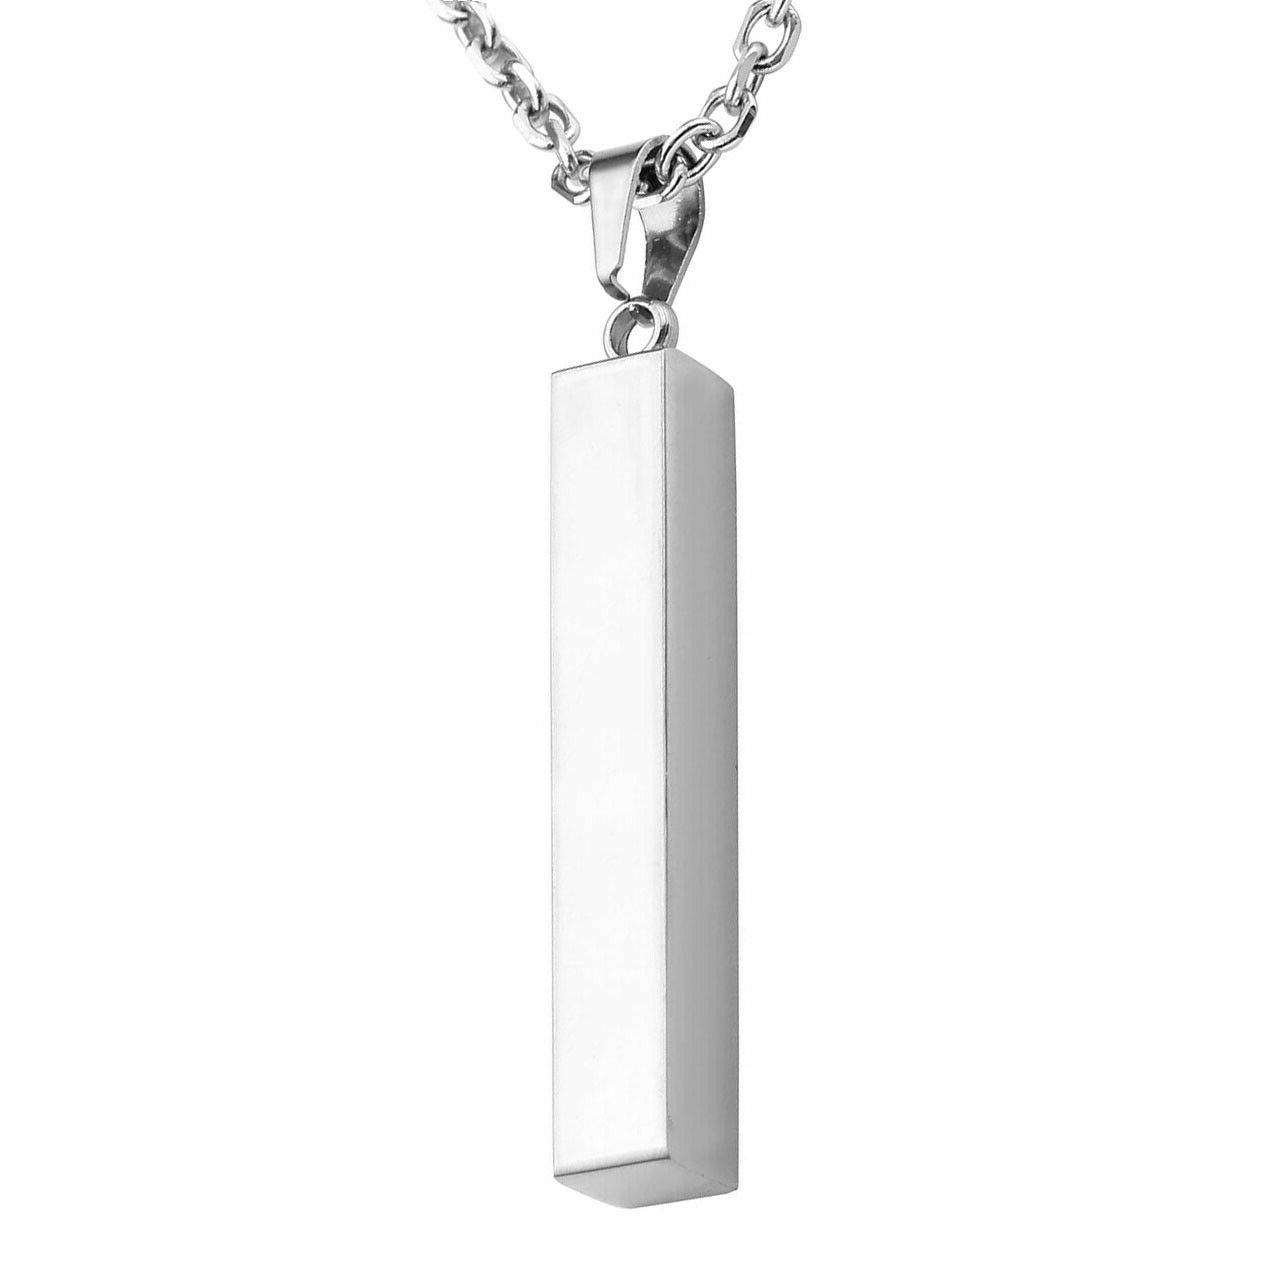 Personalized Engraved Name Stainless Bar Pendant